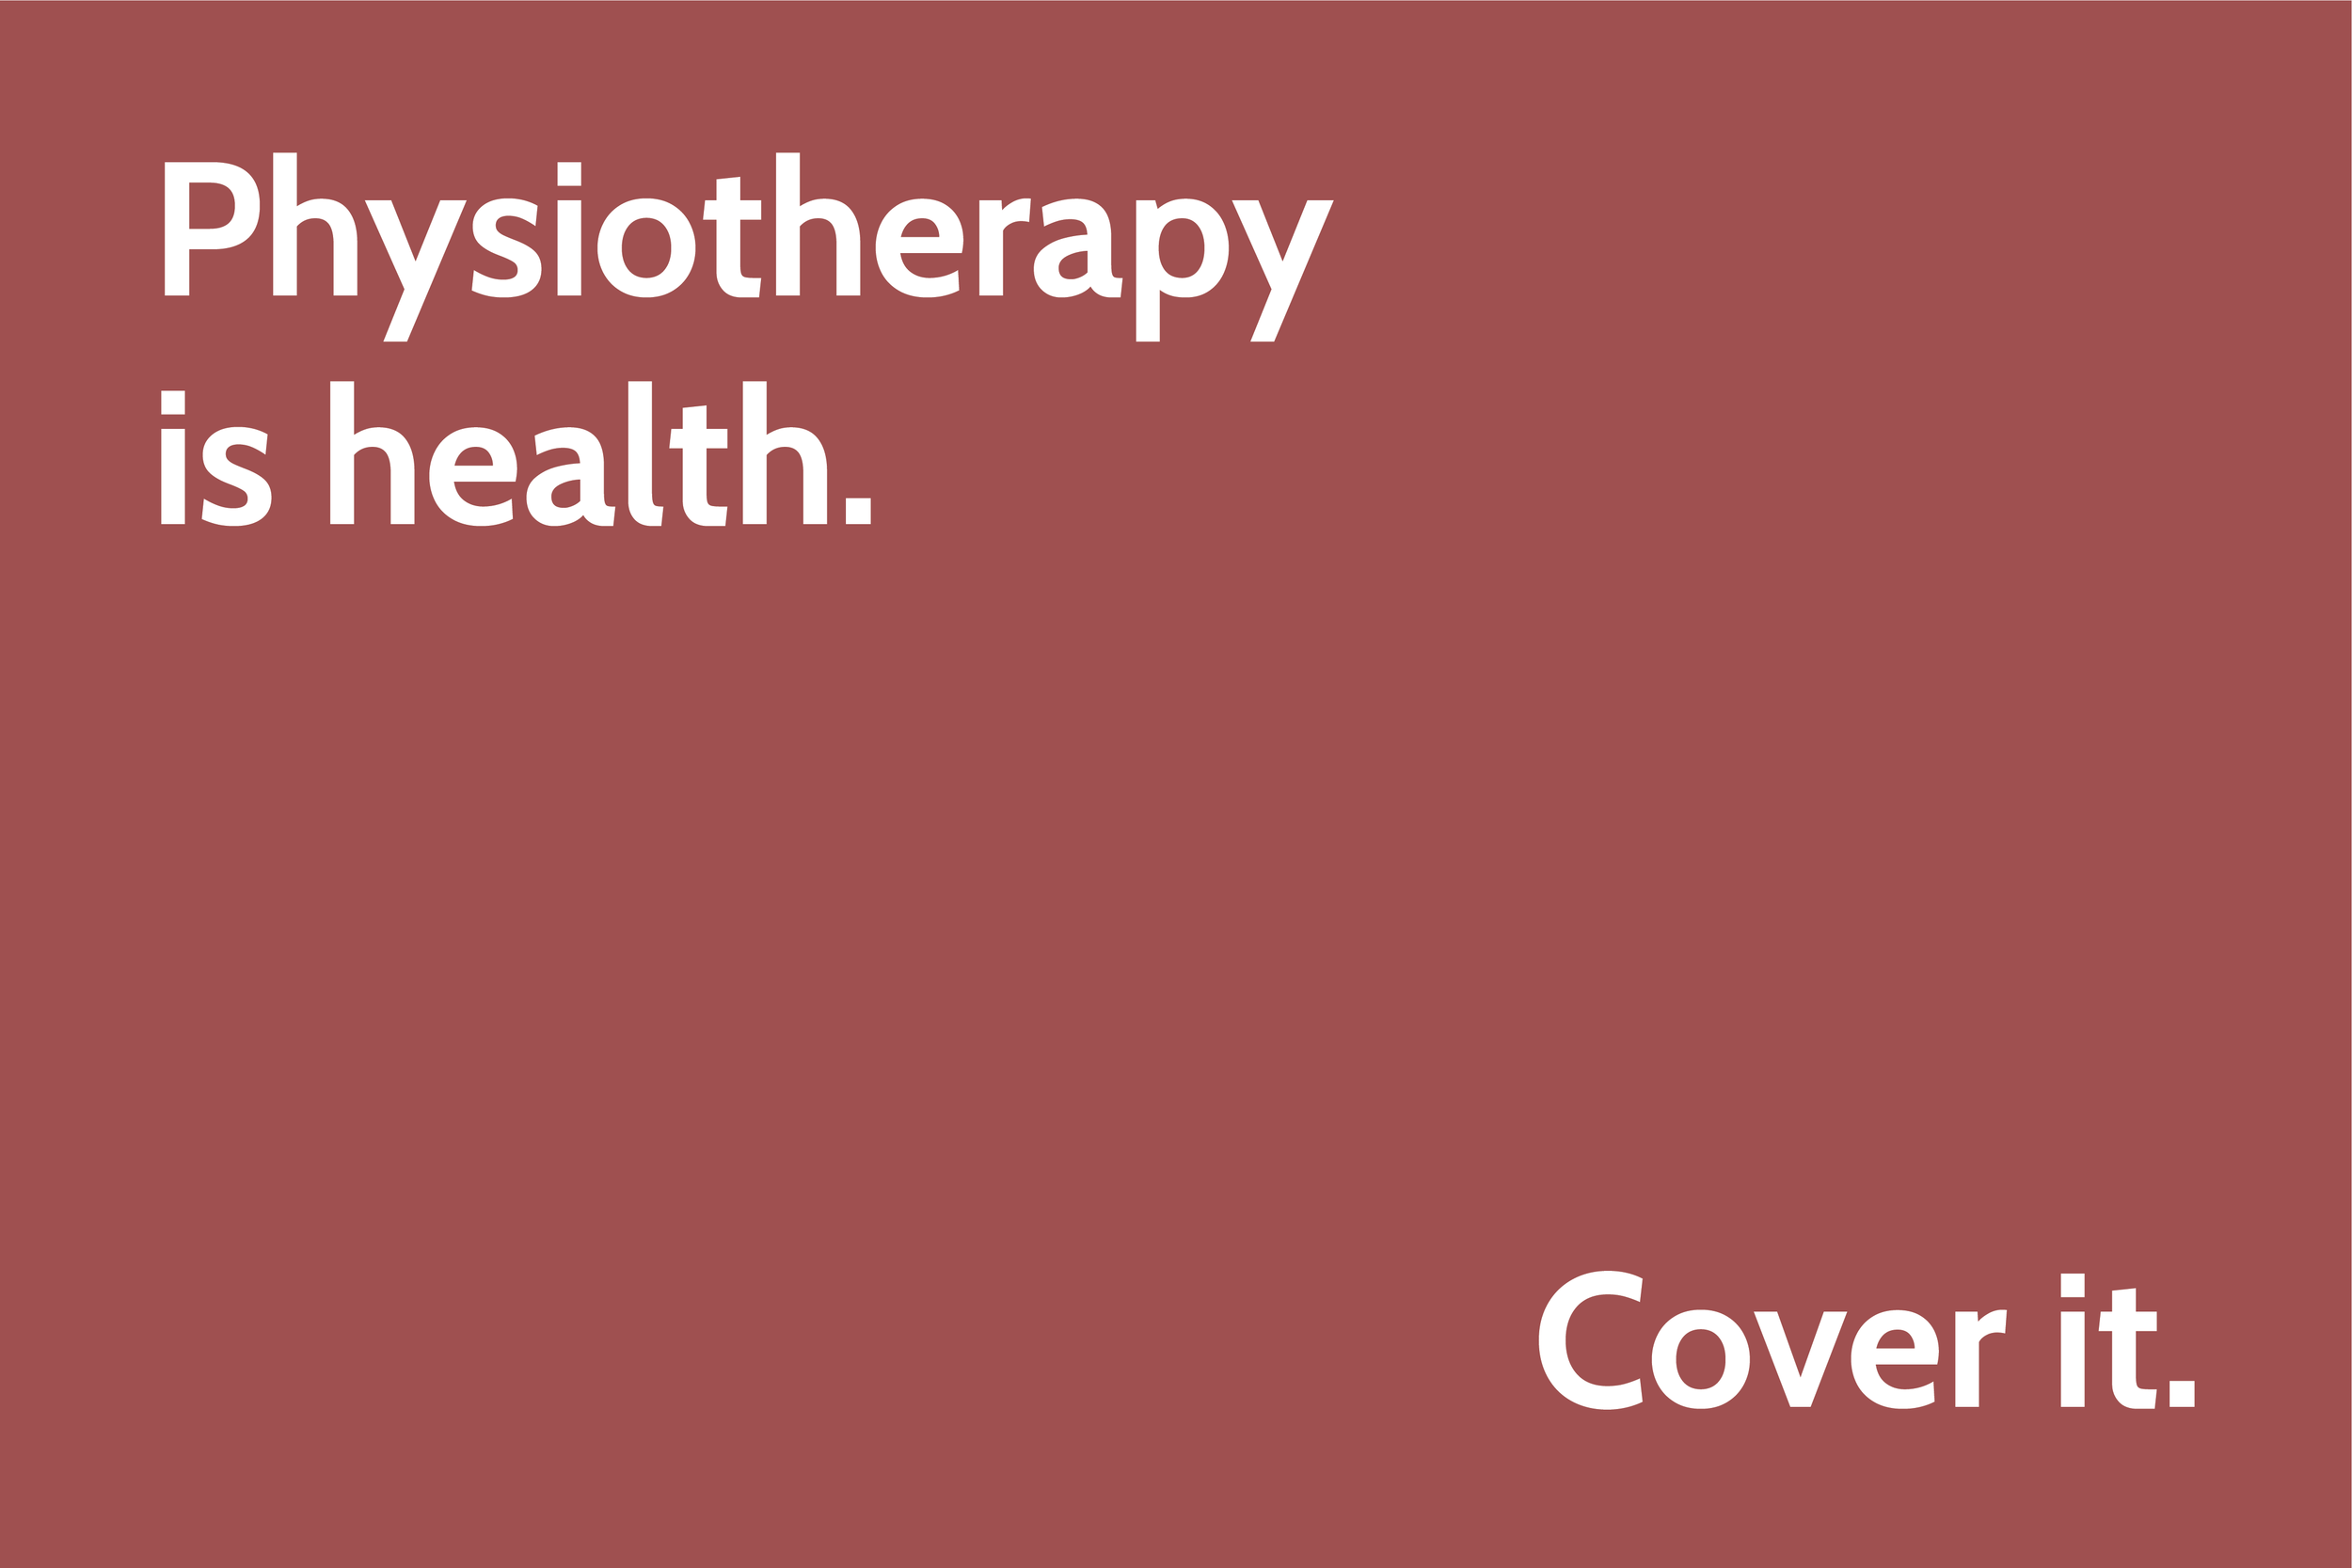 Physiotherapy is health. Cover it.png